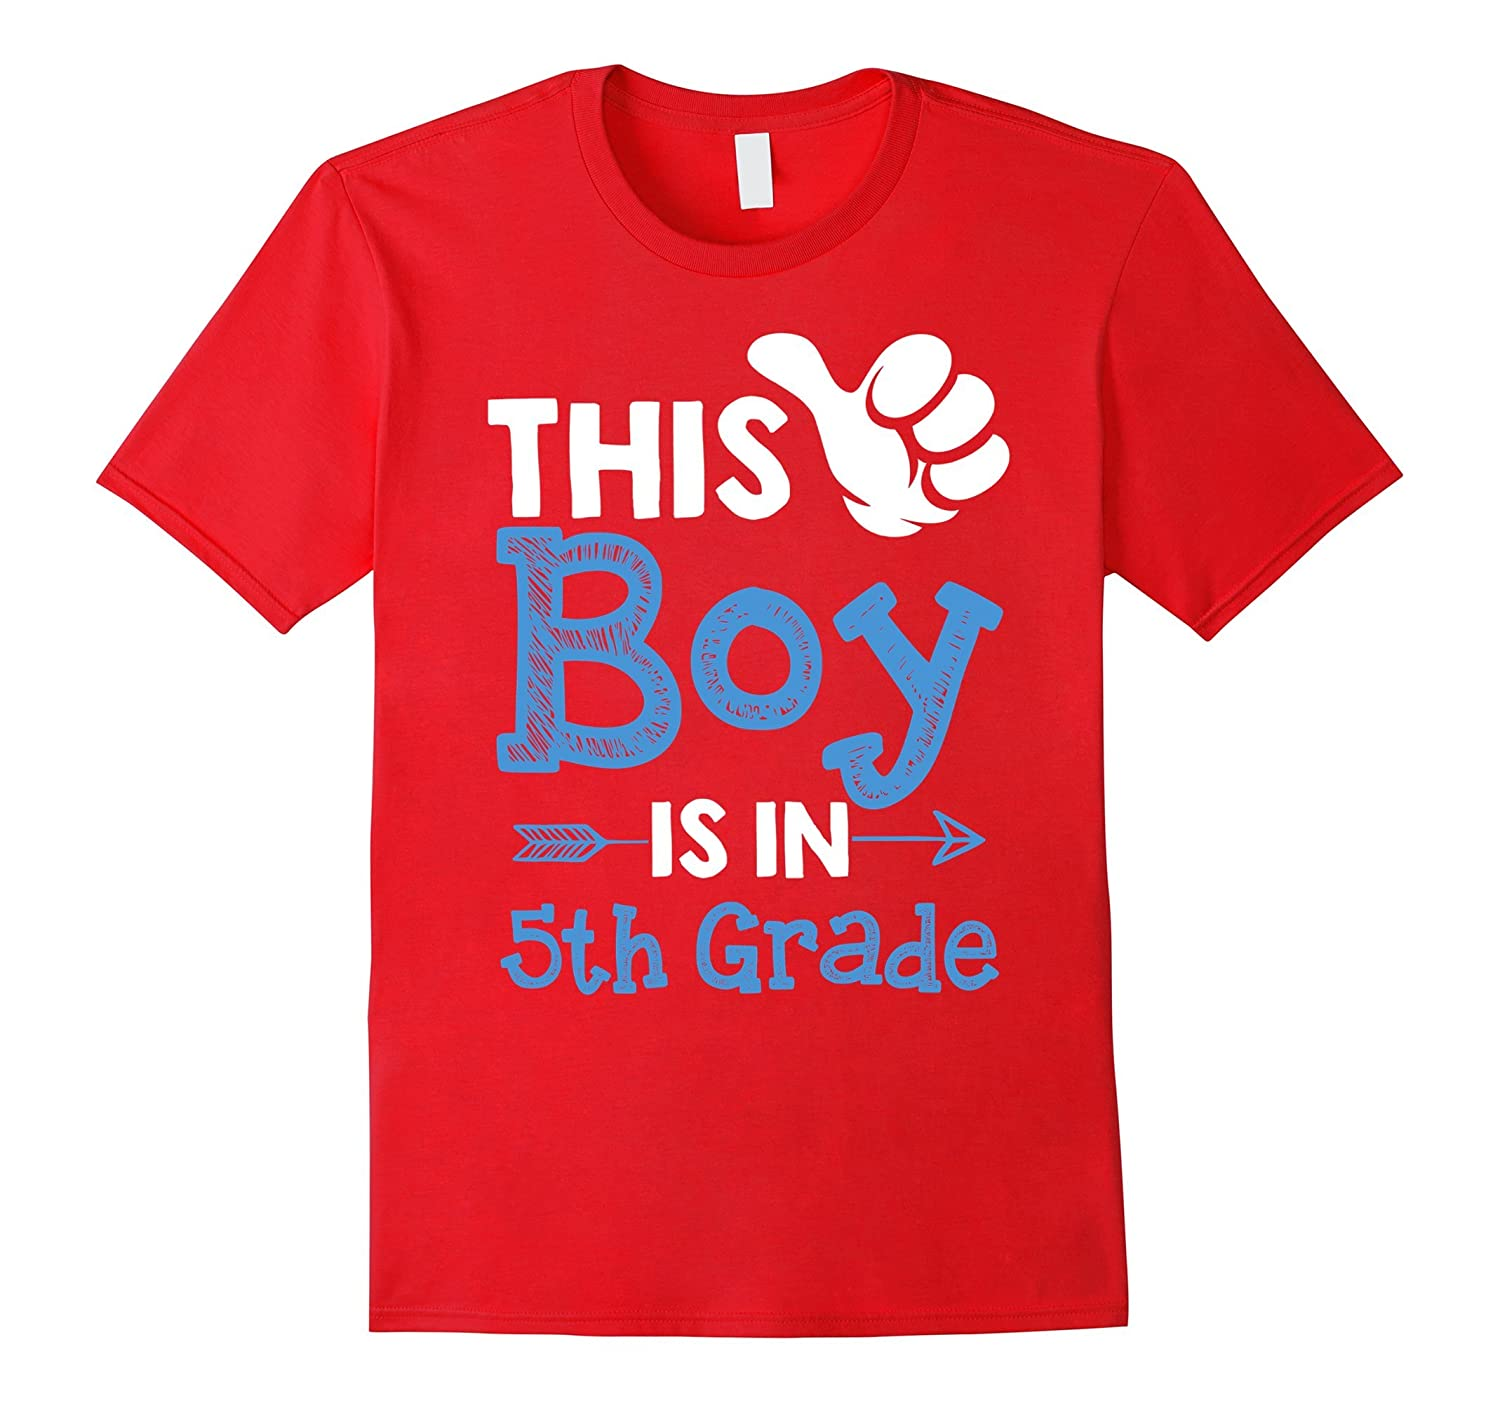 This Boy Is In 5th Grade T-shirt Students Boy School-CL